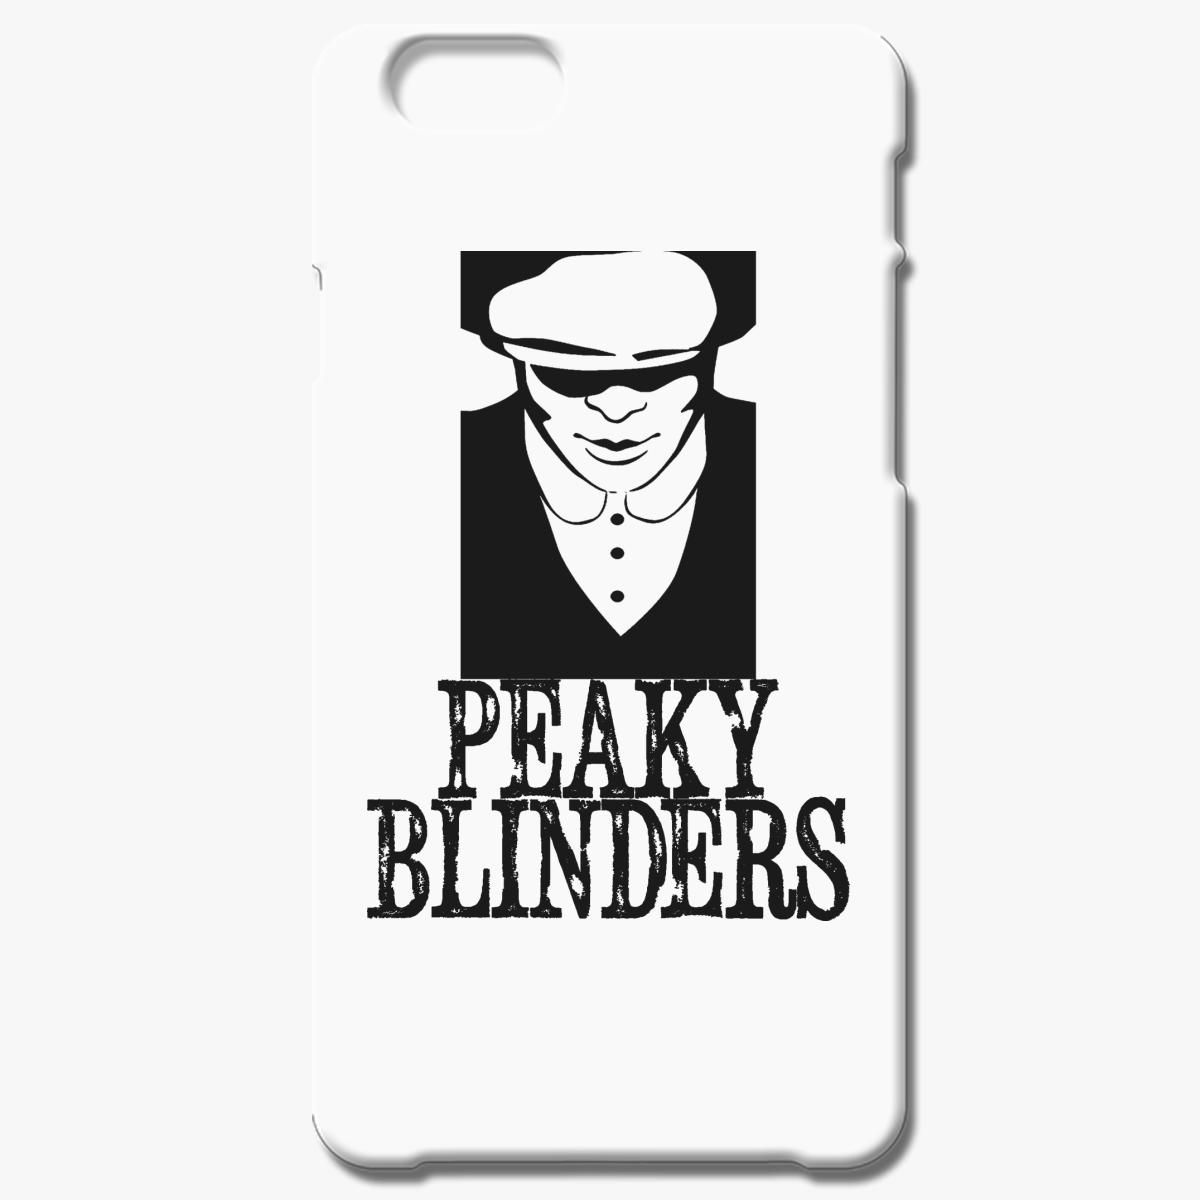 The Peaky Blinders Iphone 6 6s Case